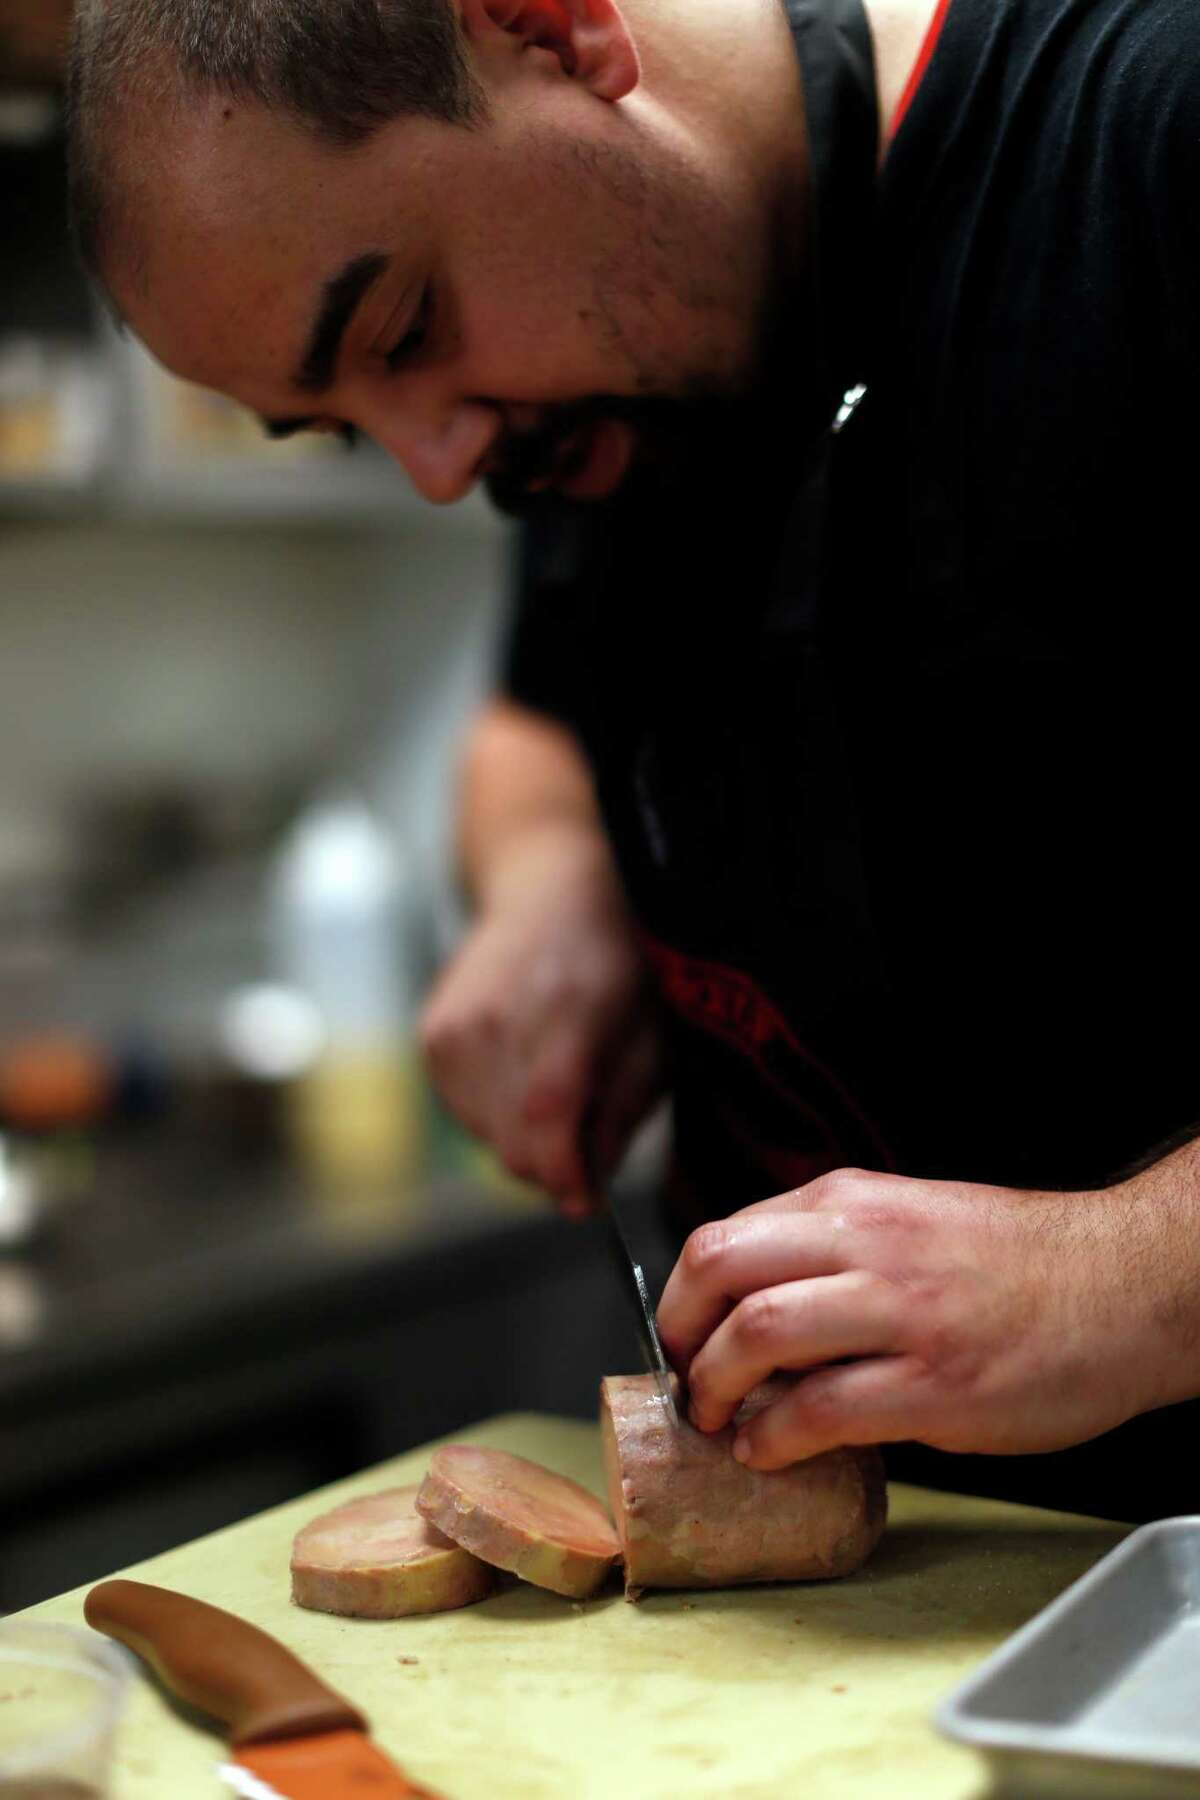 Manny Castrillo slices foie gras at Dirty Habit in San Francisco on Wednesday.